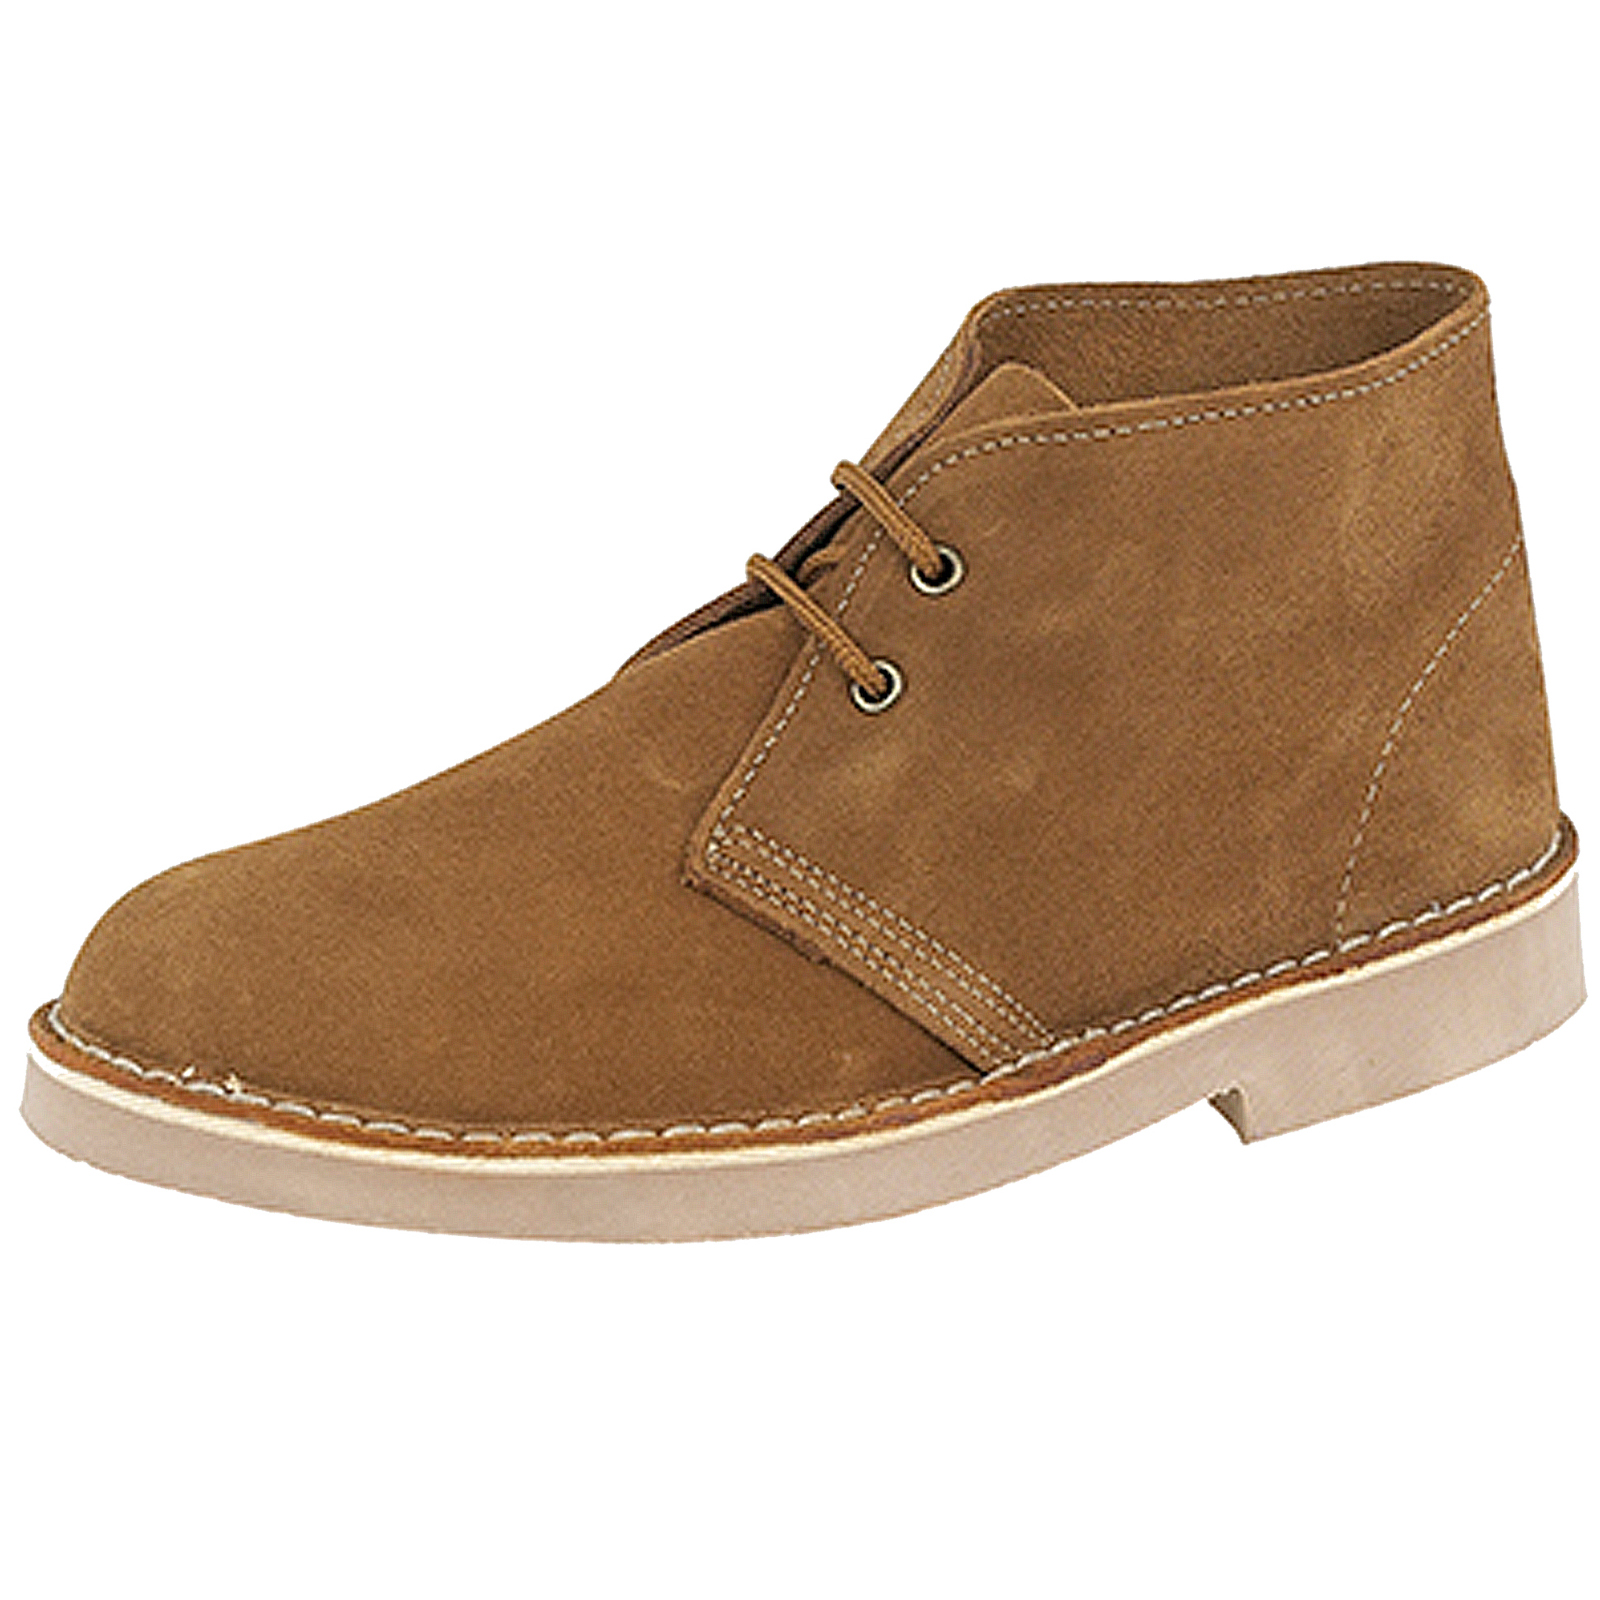 Simple UGG Womens Ugg Gradin Burnished Suede Lace Up Boot Chestnut - UGG Womens From Blueberries UK